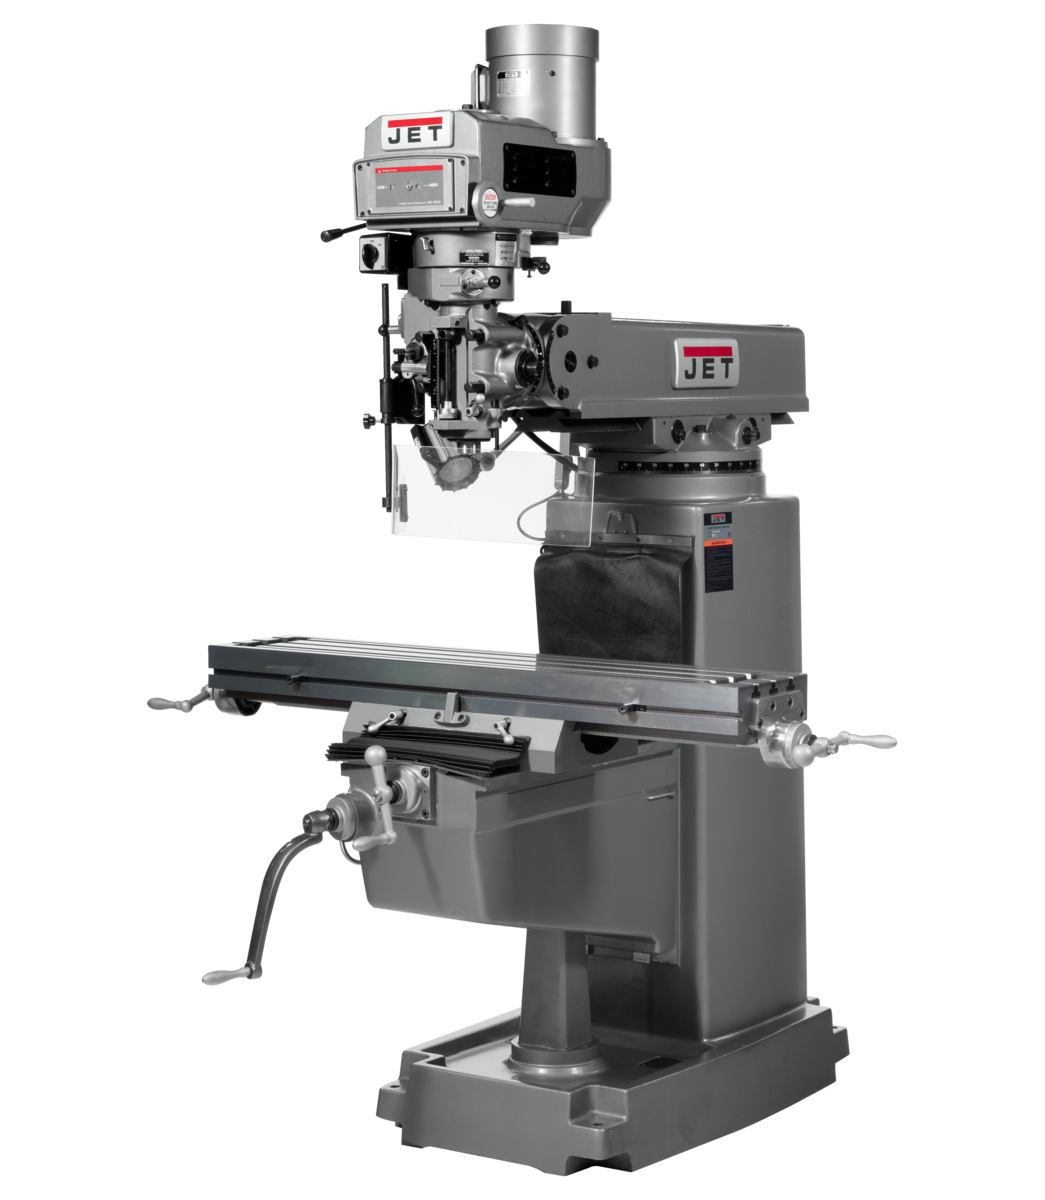 JTM-1050VS2 Variable Speed Mill with LED Worklamp and Spindle Guard, 230/460V, 3Ph